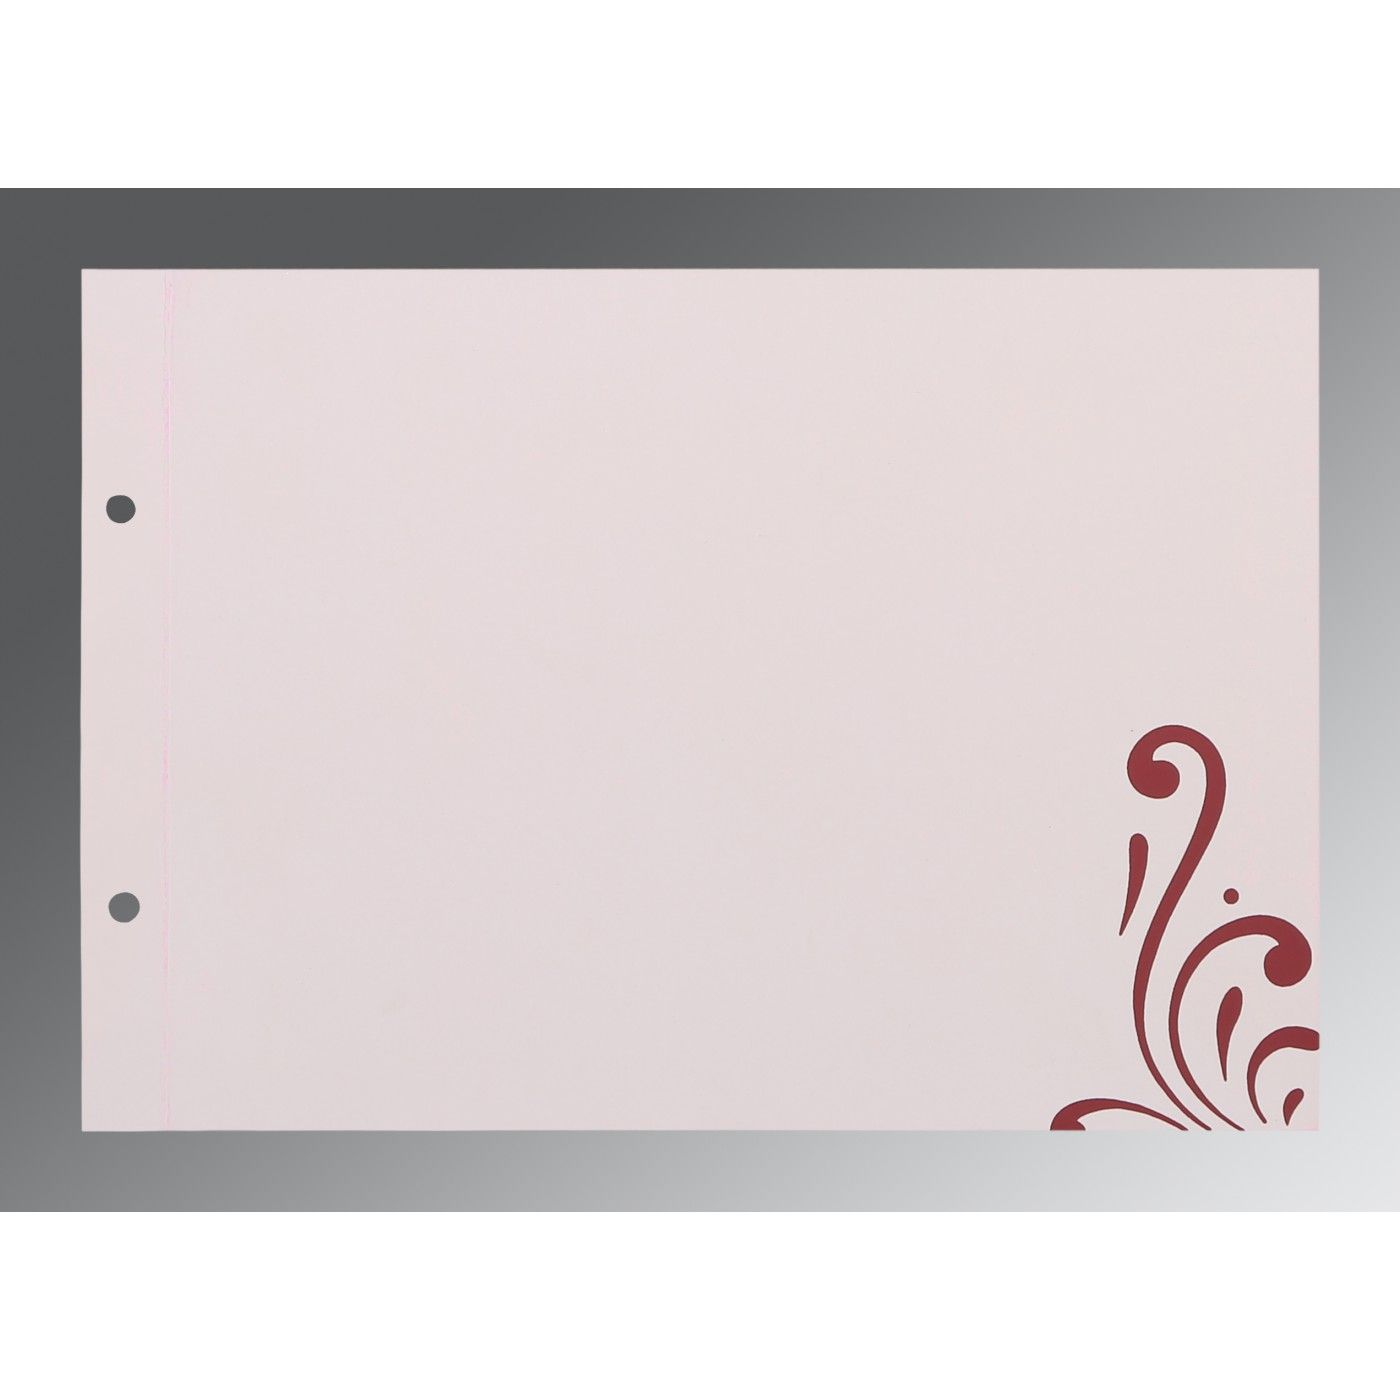 RAISIN SHIMMERY SCREEN PRINTED WEDDING CARD : CD-8223J - IndianWeddingCards